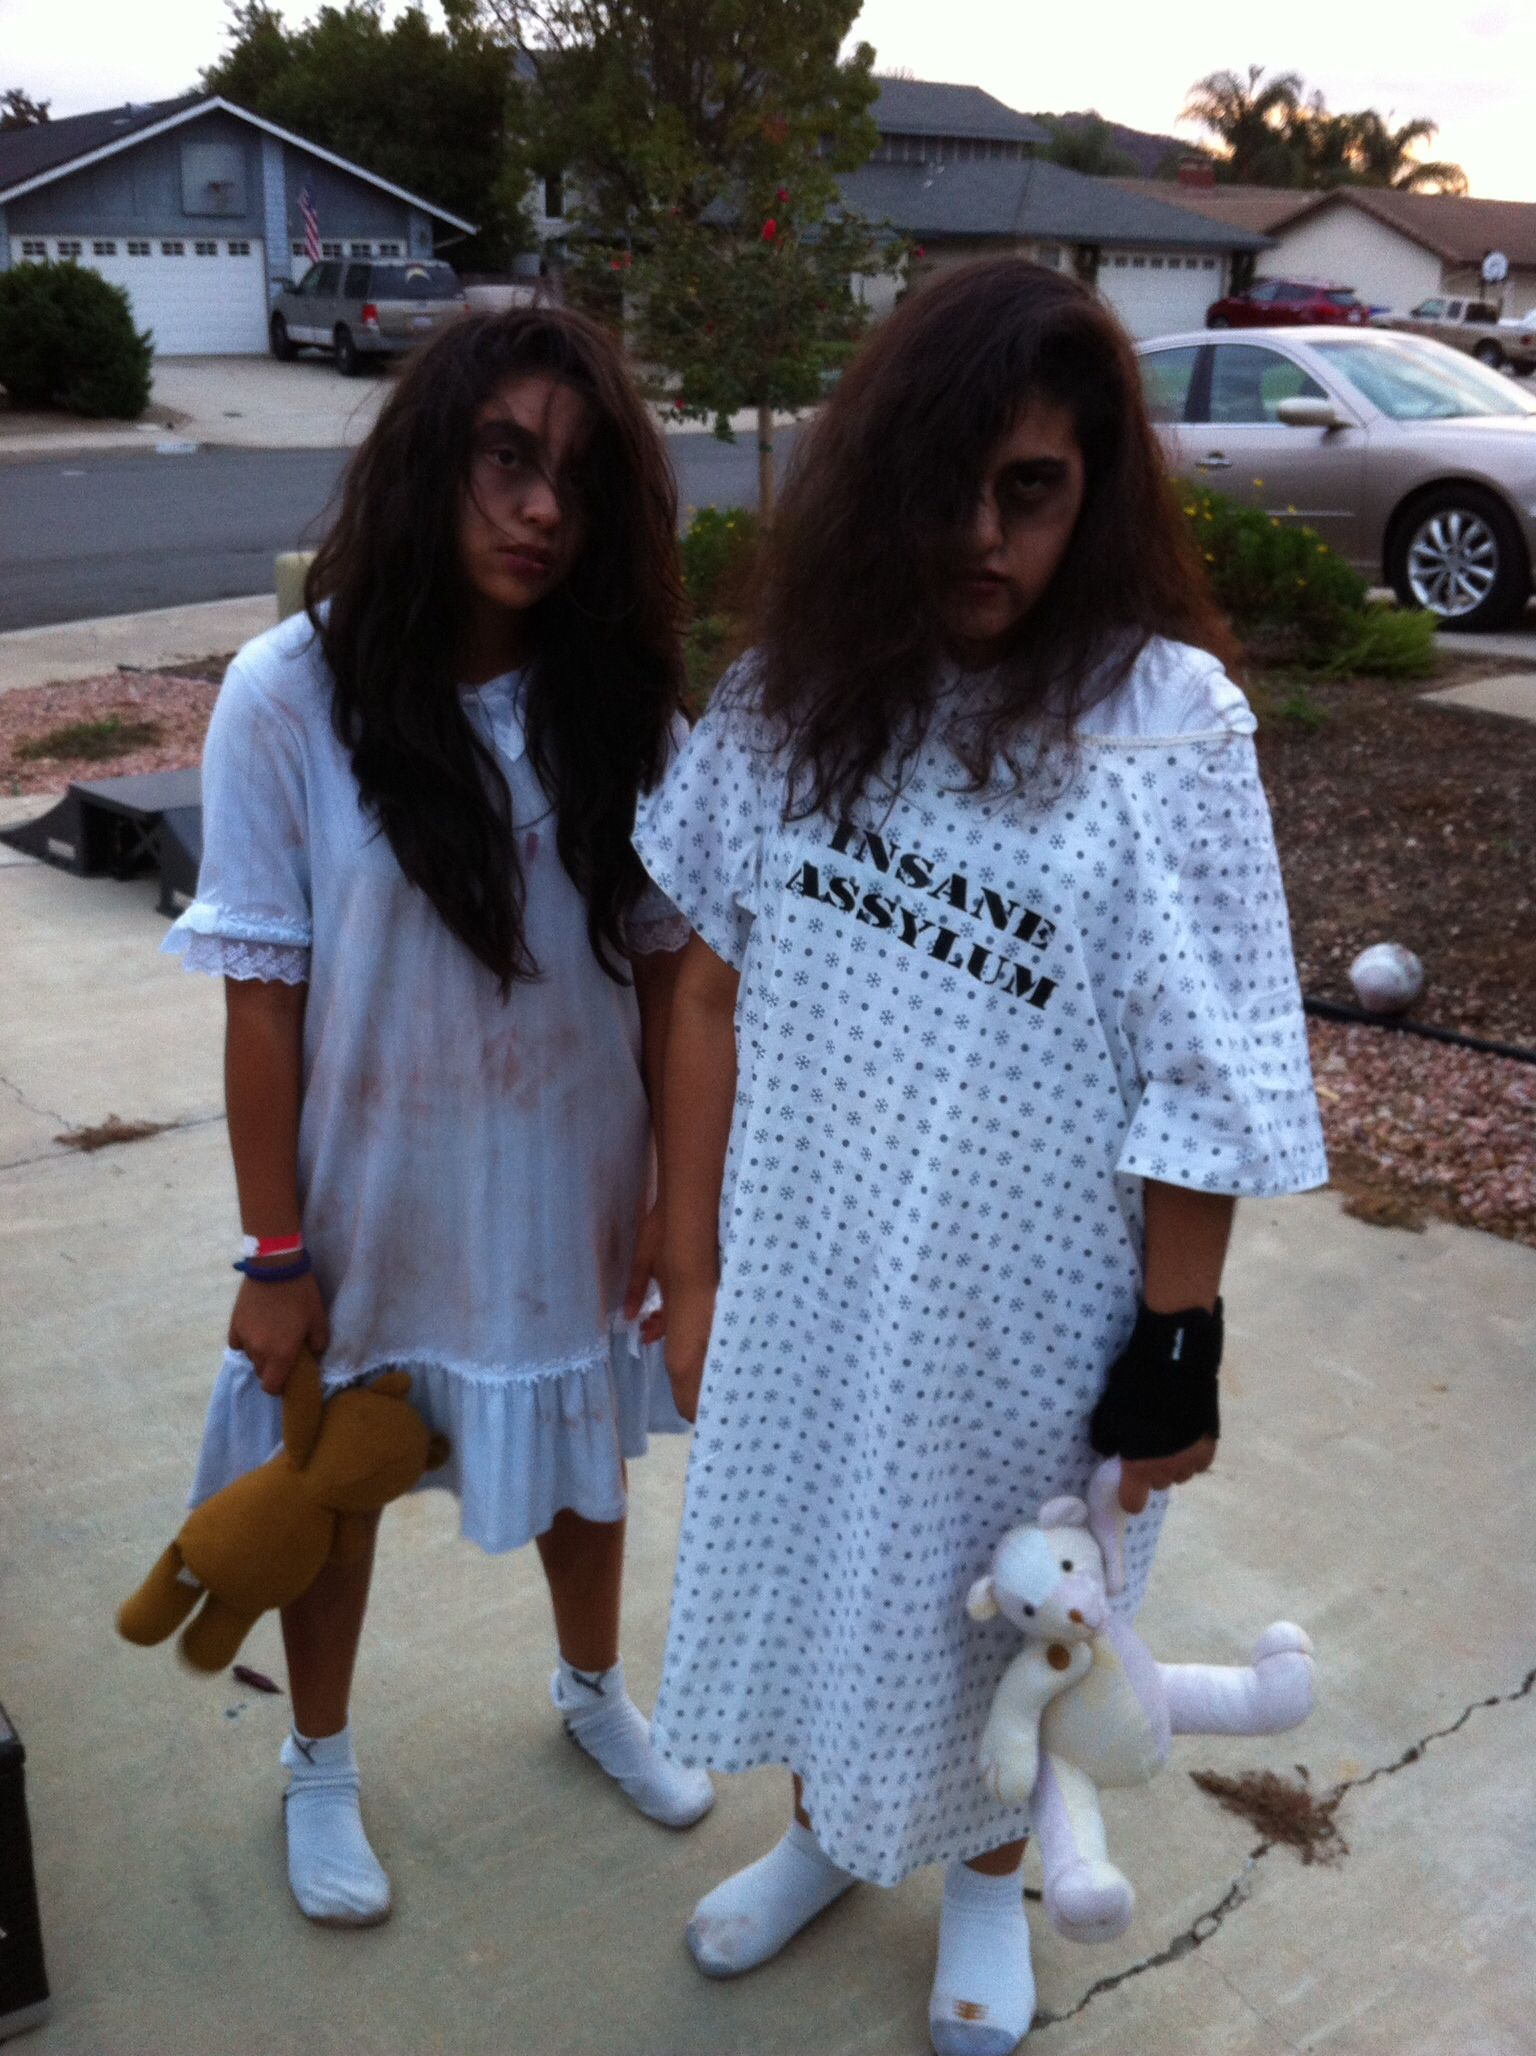 asylum patients, scary girls, halloween, diy costumes | halloween in